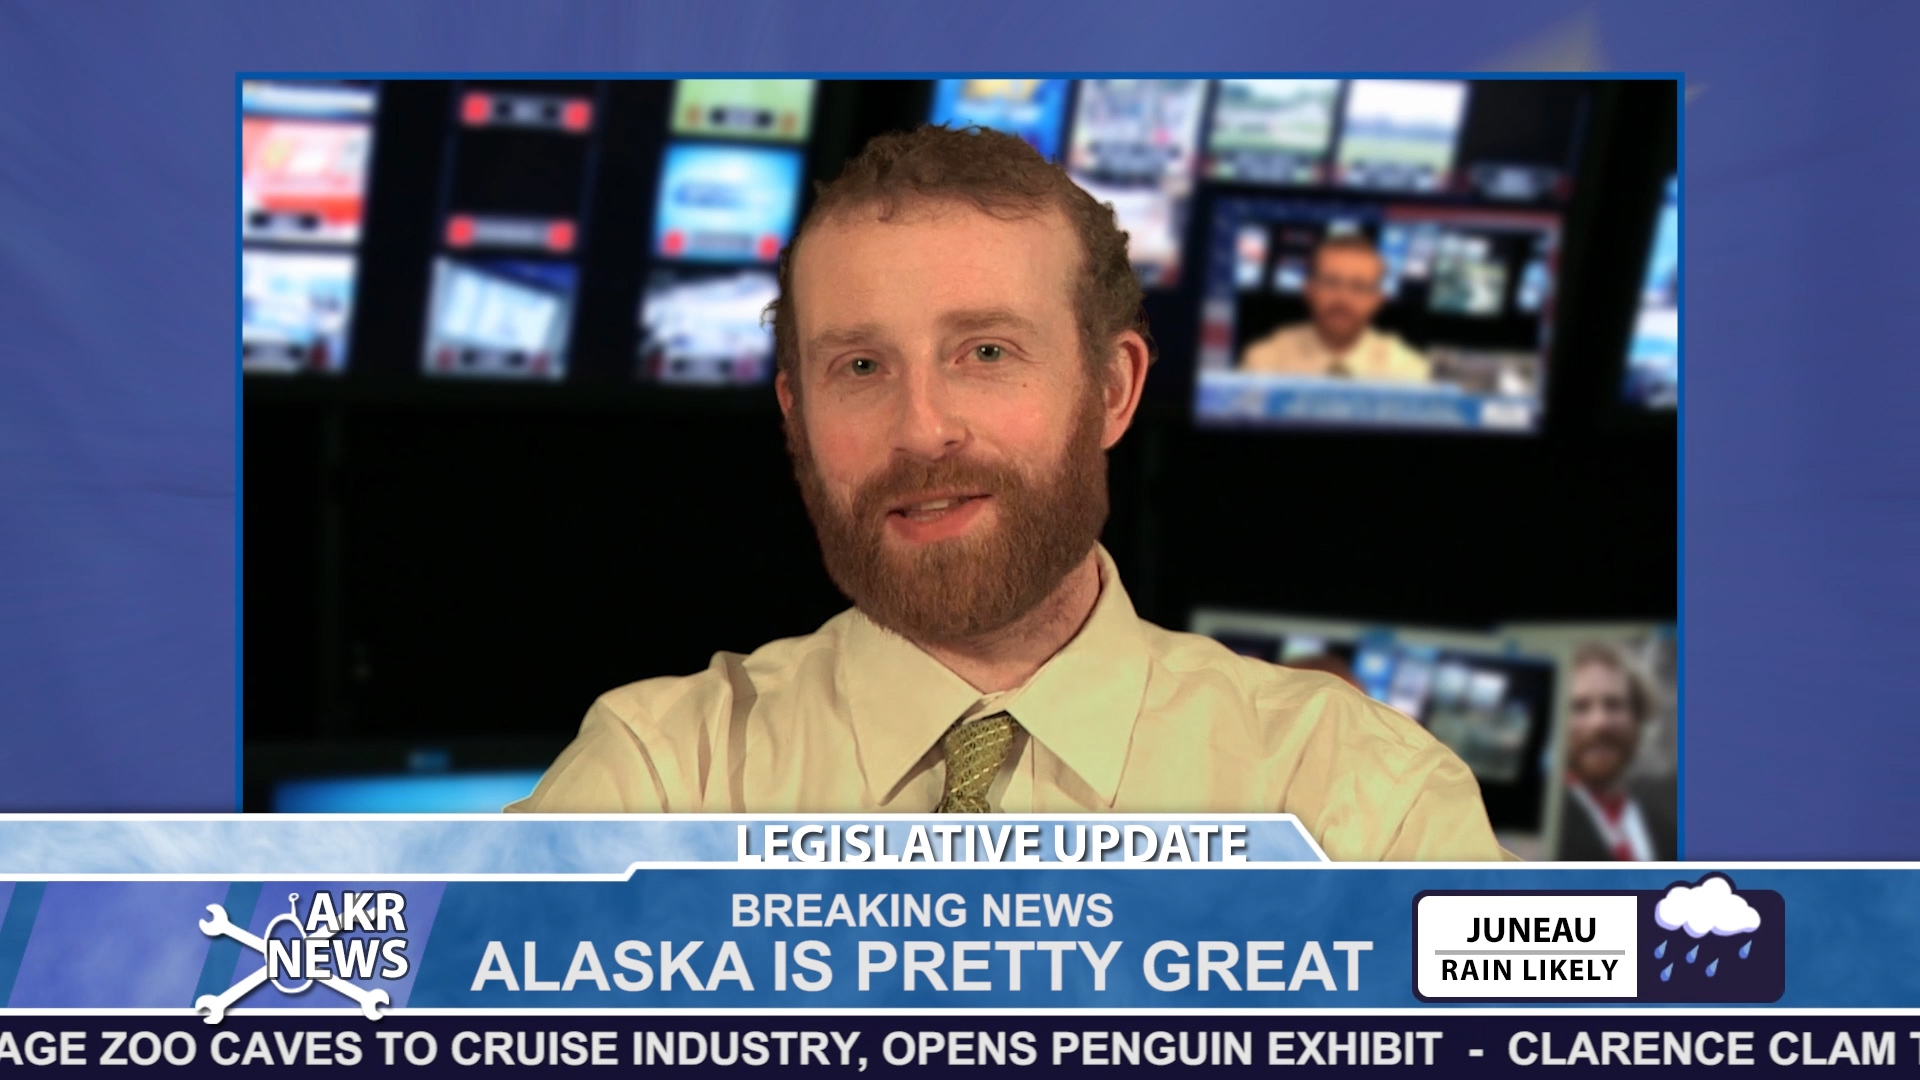 A video still from a 2013 episode of Alaska Robotics News with host Pat Race. (Courtesy of Alaska Robotics)